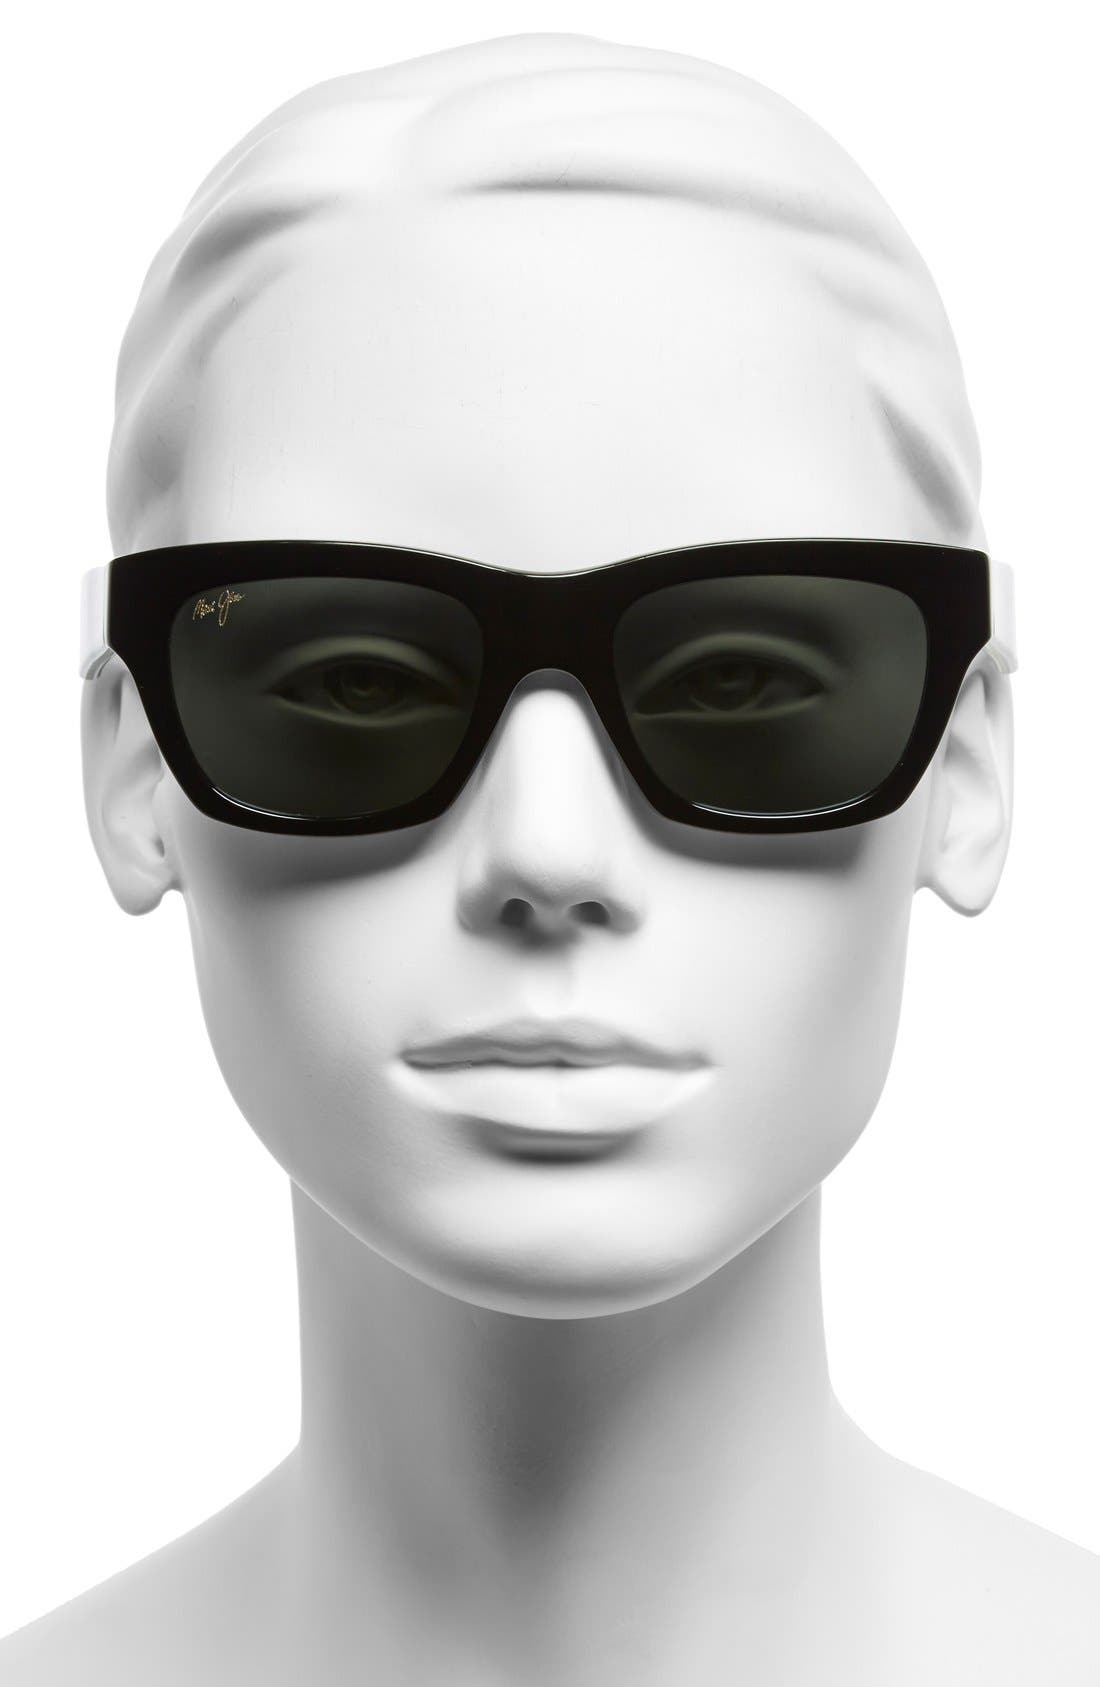 You Move Me 52mm PolarizedPlus2<sup>®</sup> Sunglasses,                             Alternate thumbnail 2, color,                             001